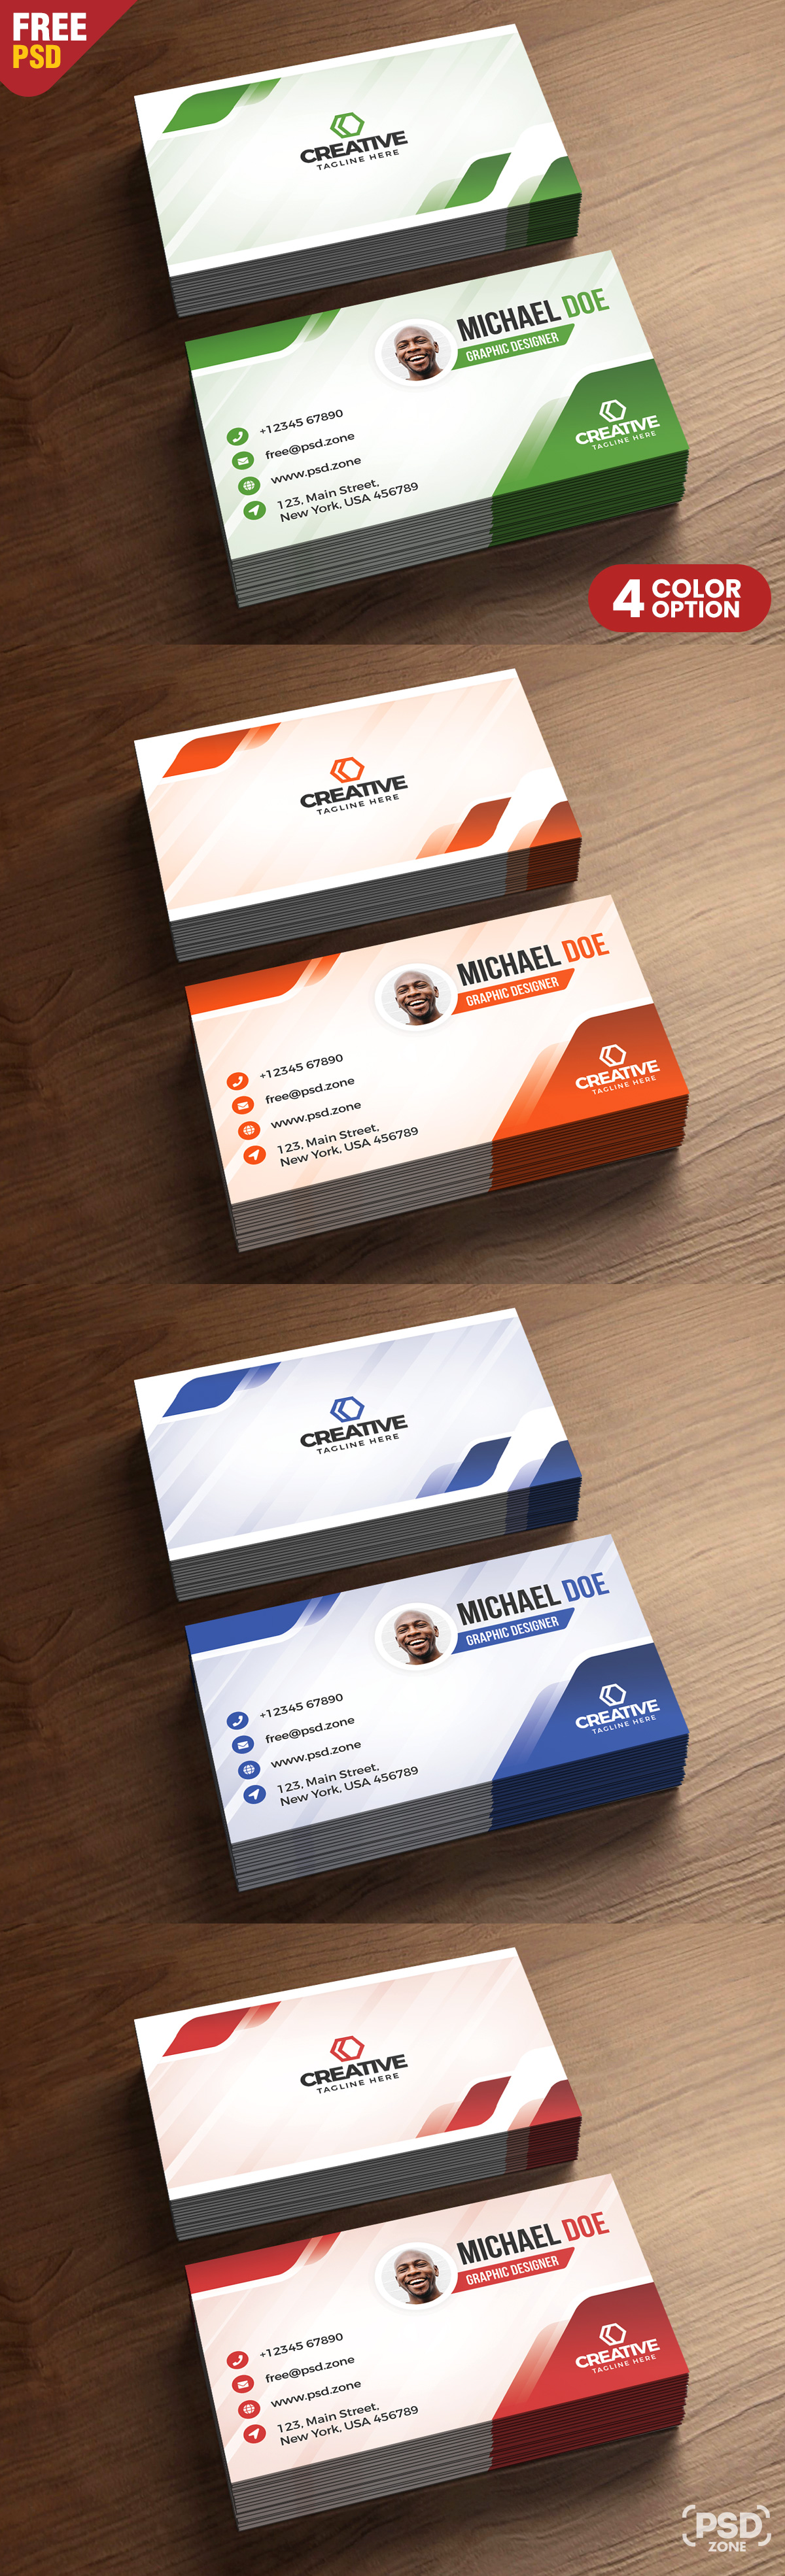 Modern Business Cards Design PSD